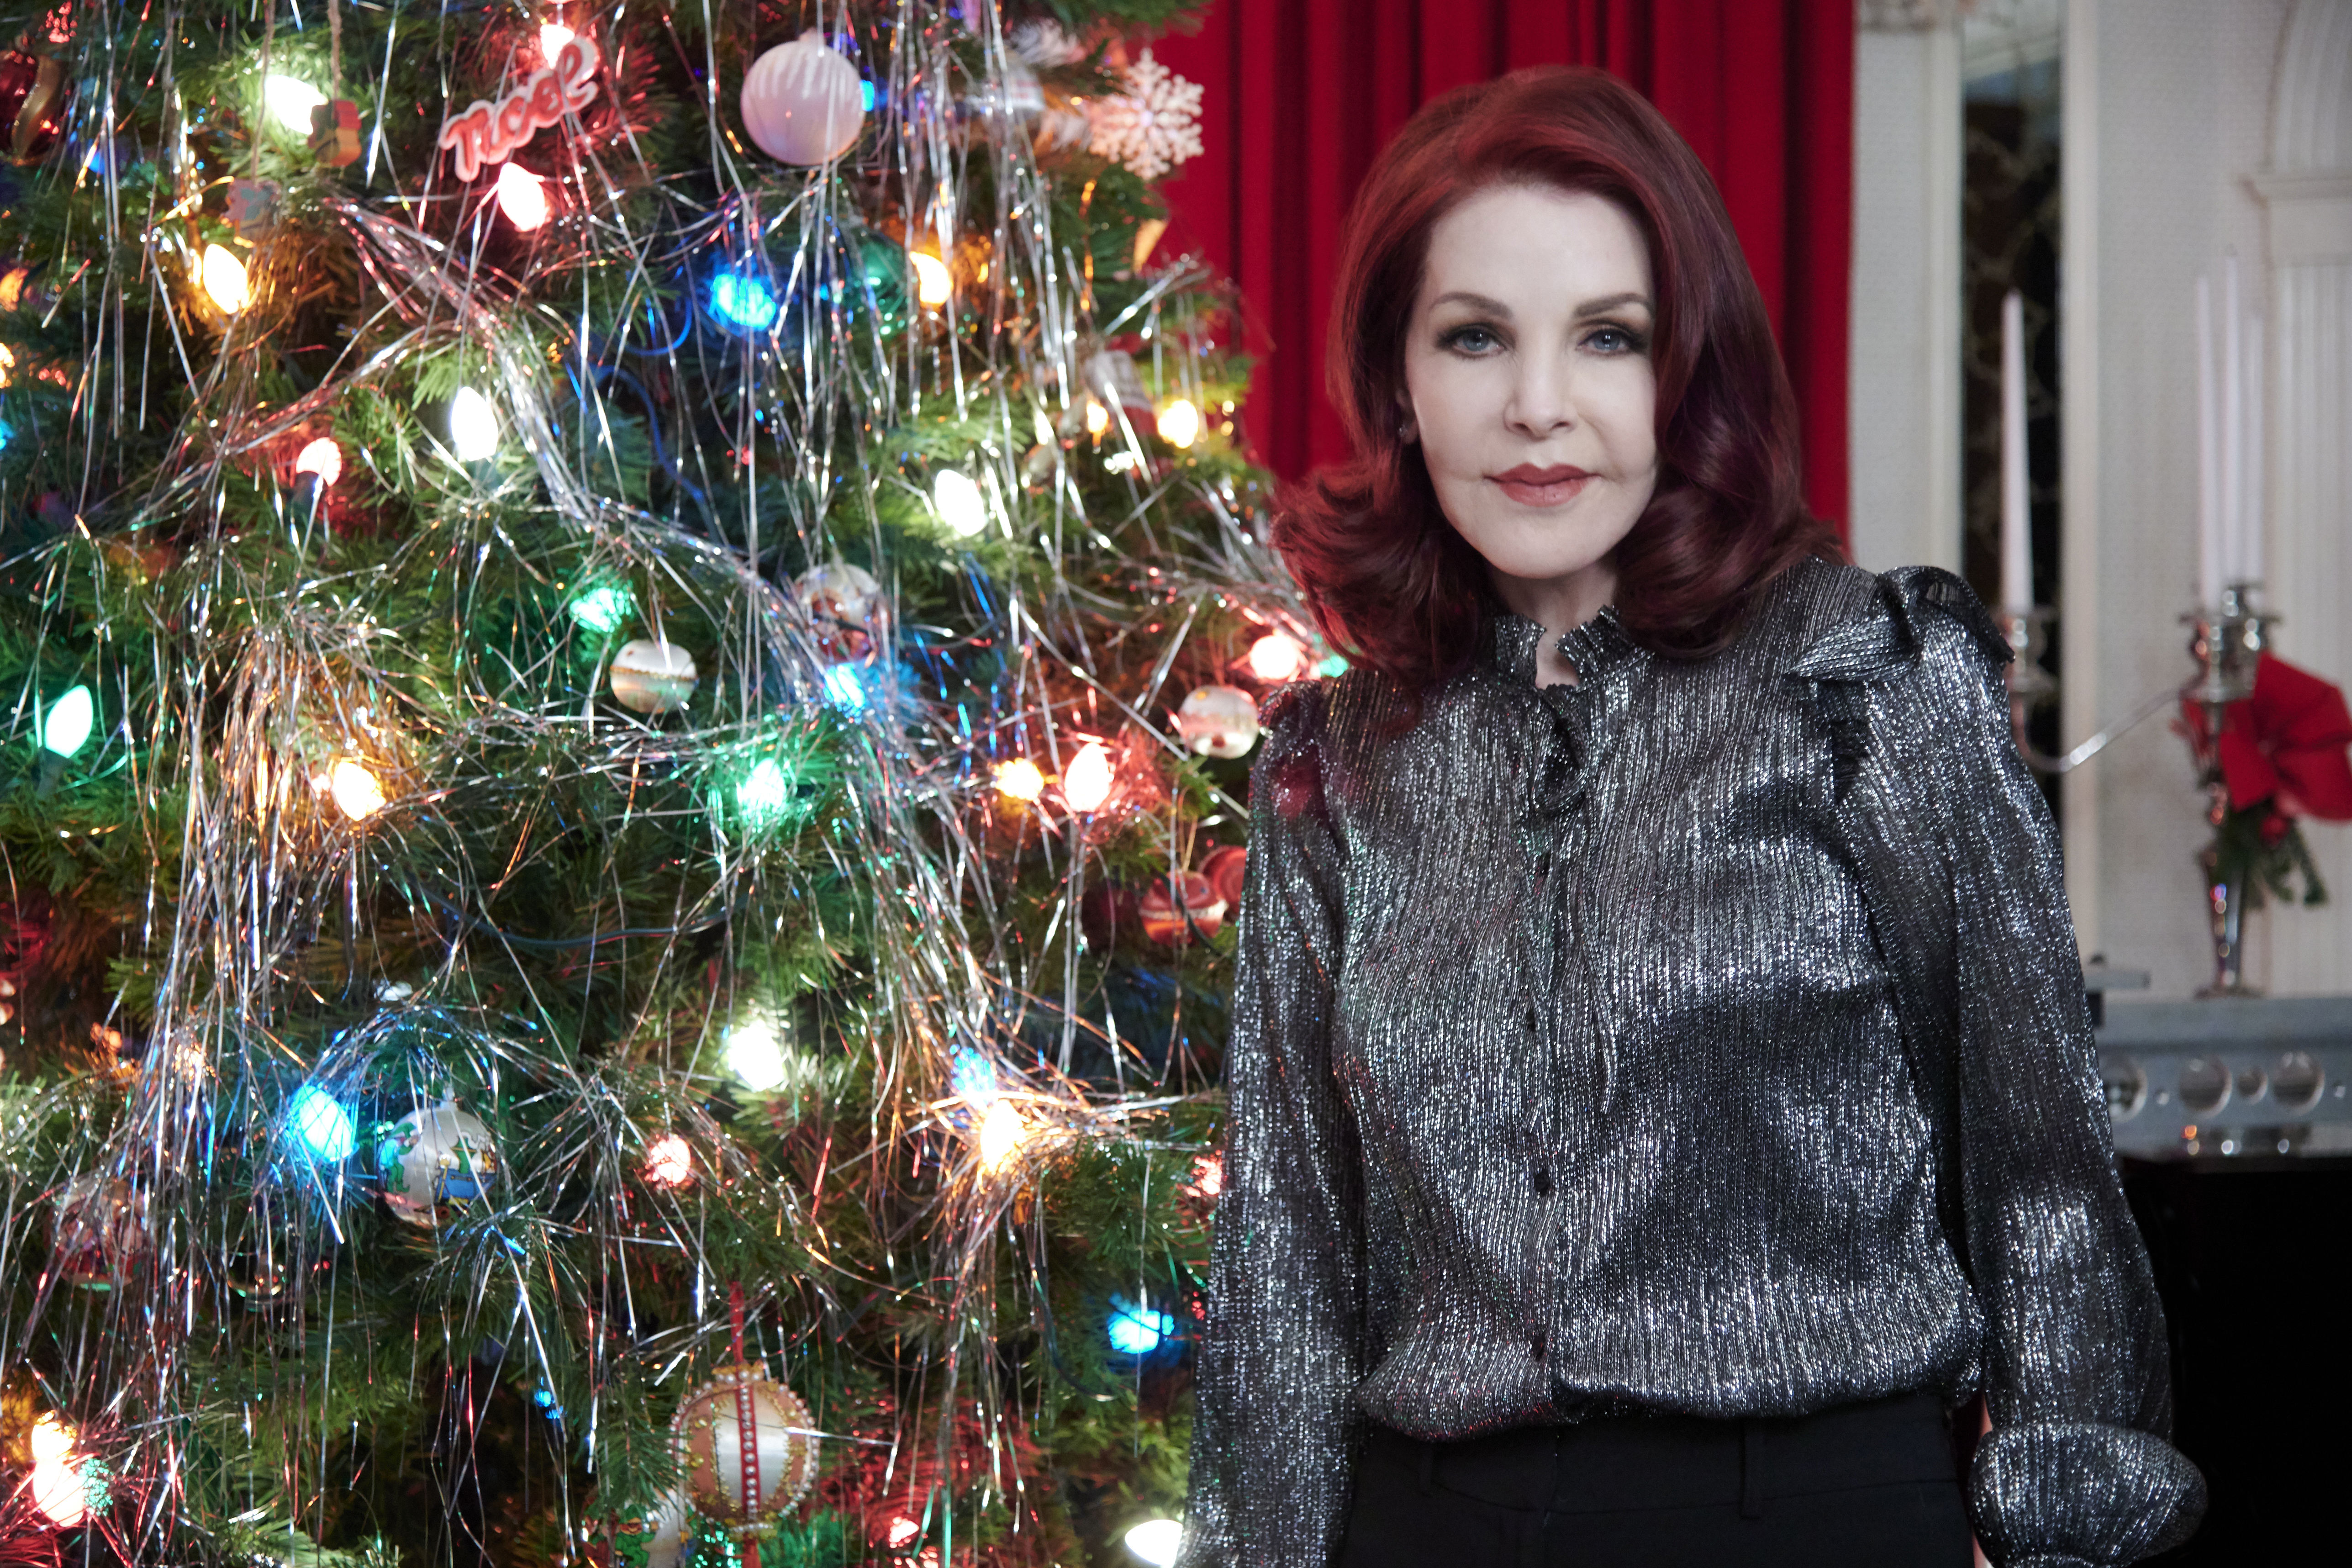 Christmas At Graceland.Priscilla Presley As Herself On Christmas At Graceland Home